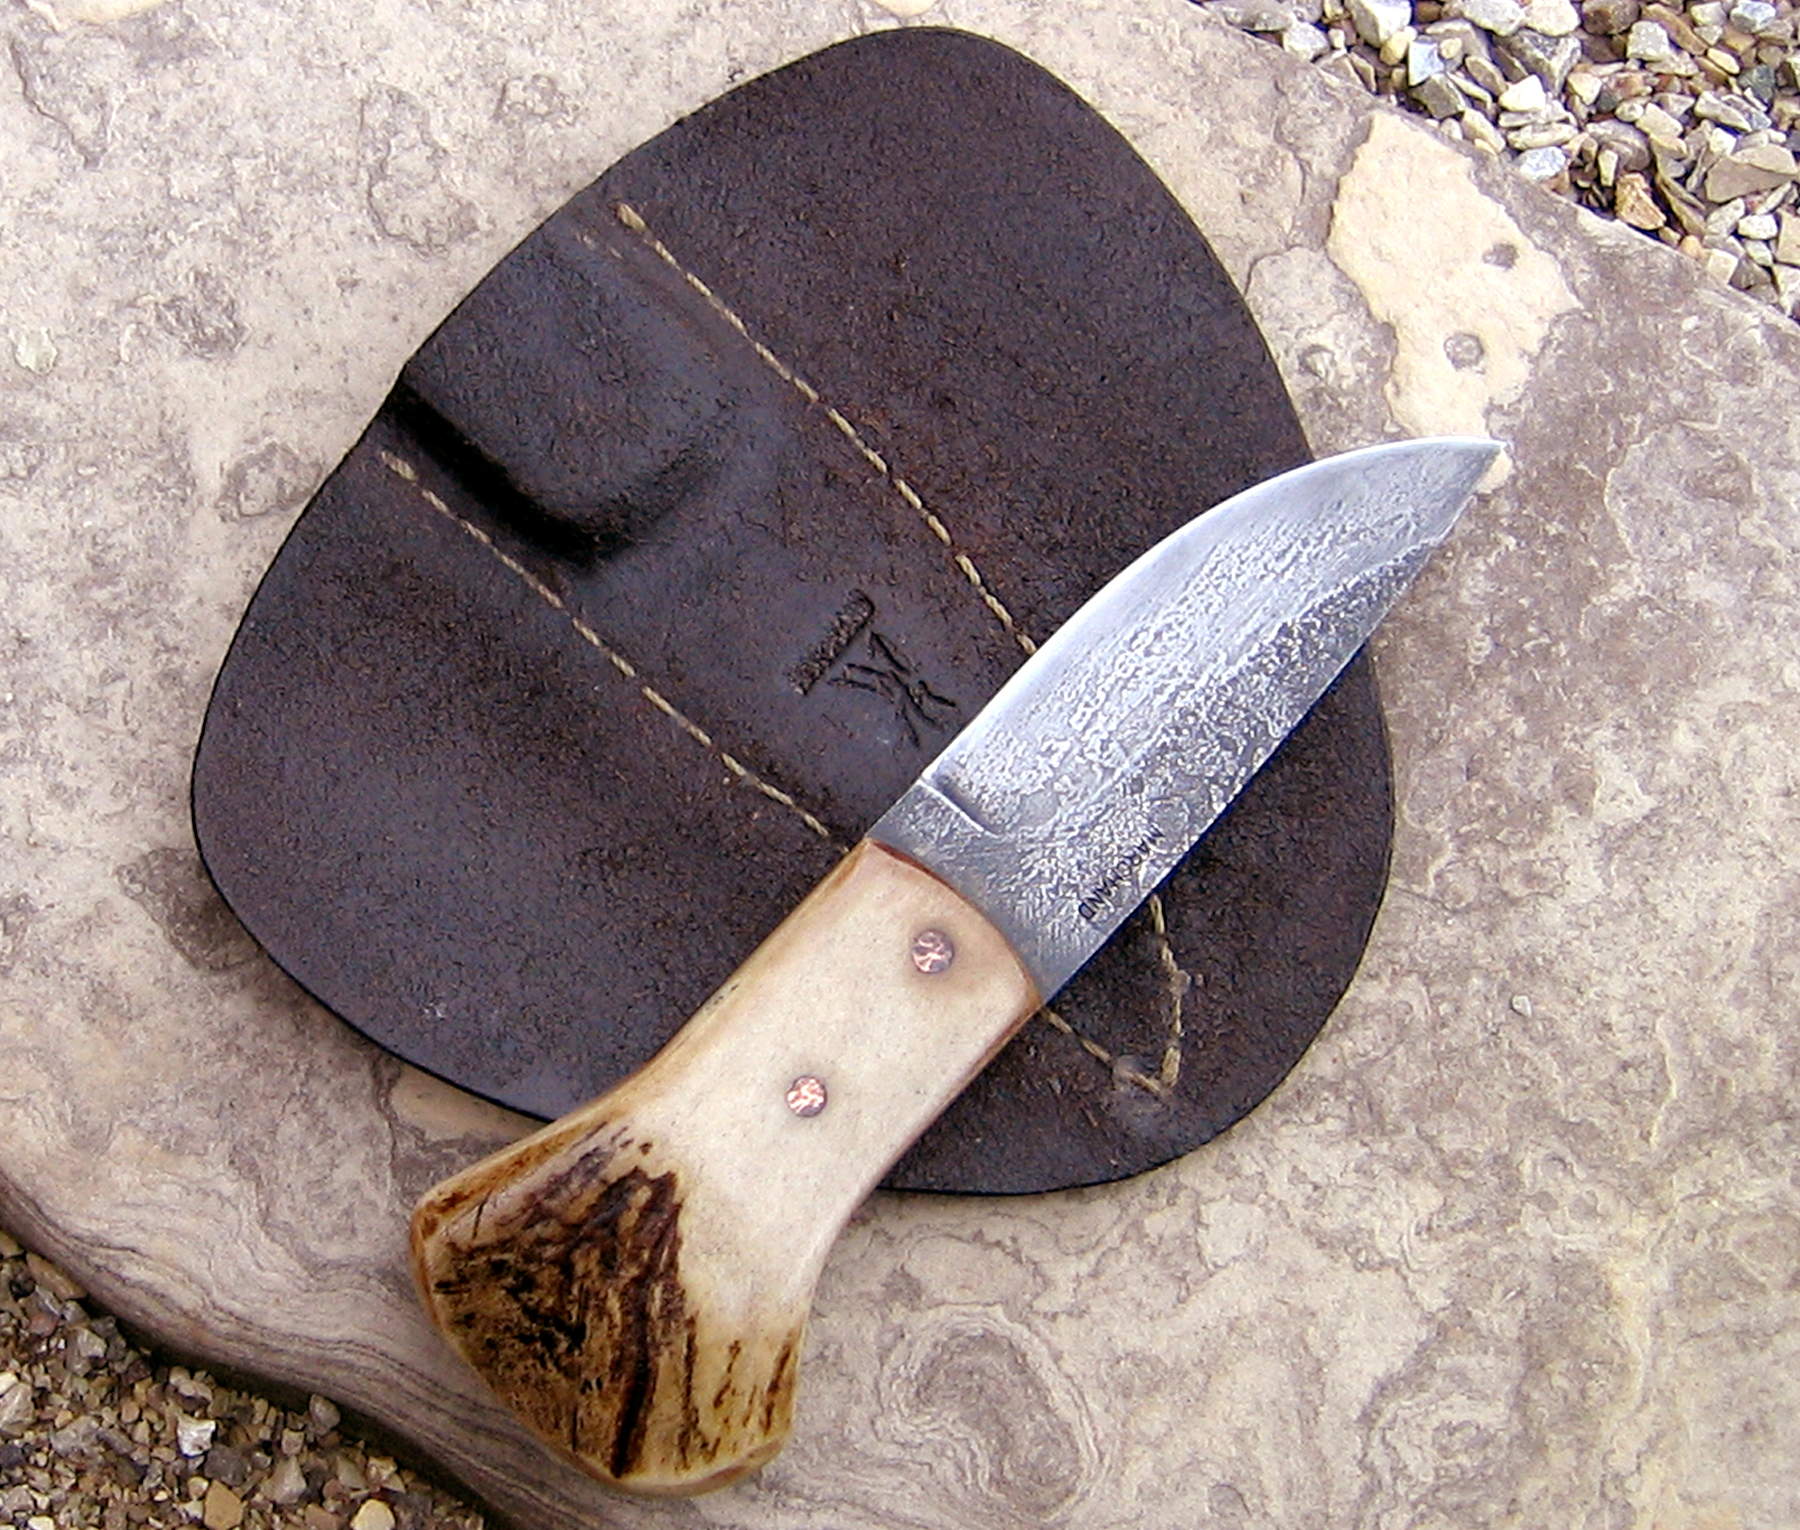 Sgian Dubh scottish knife from Wildertools by Rick Marchand